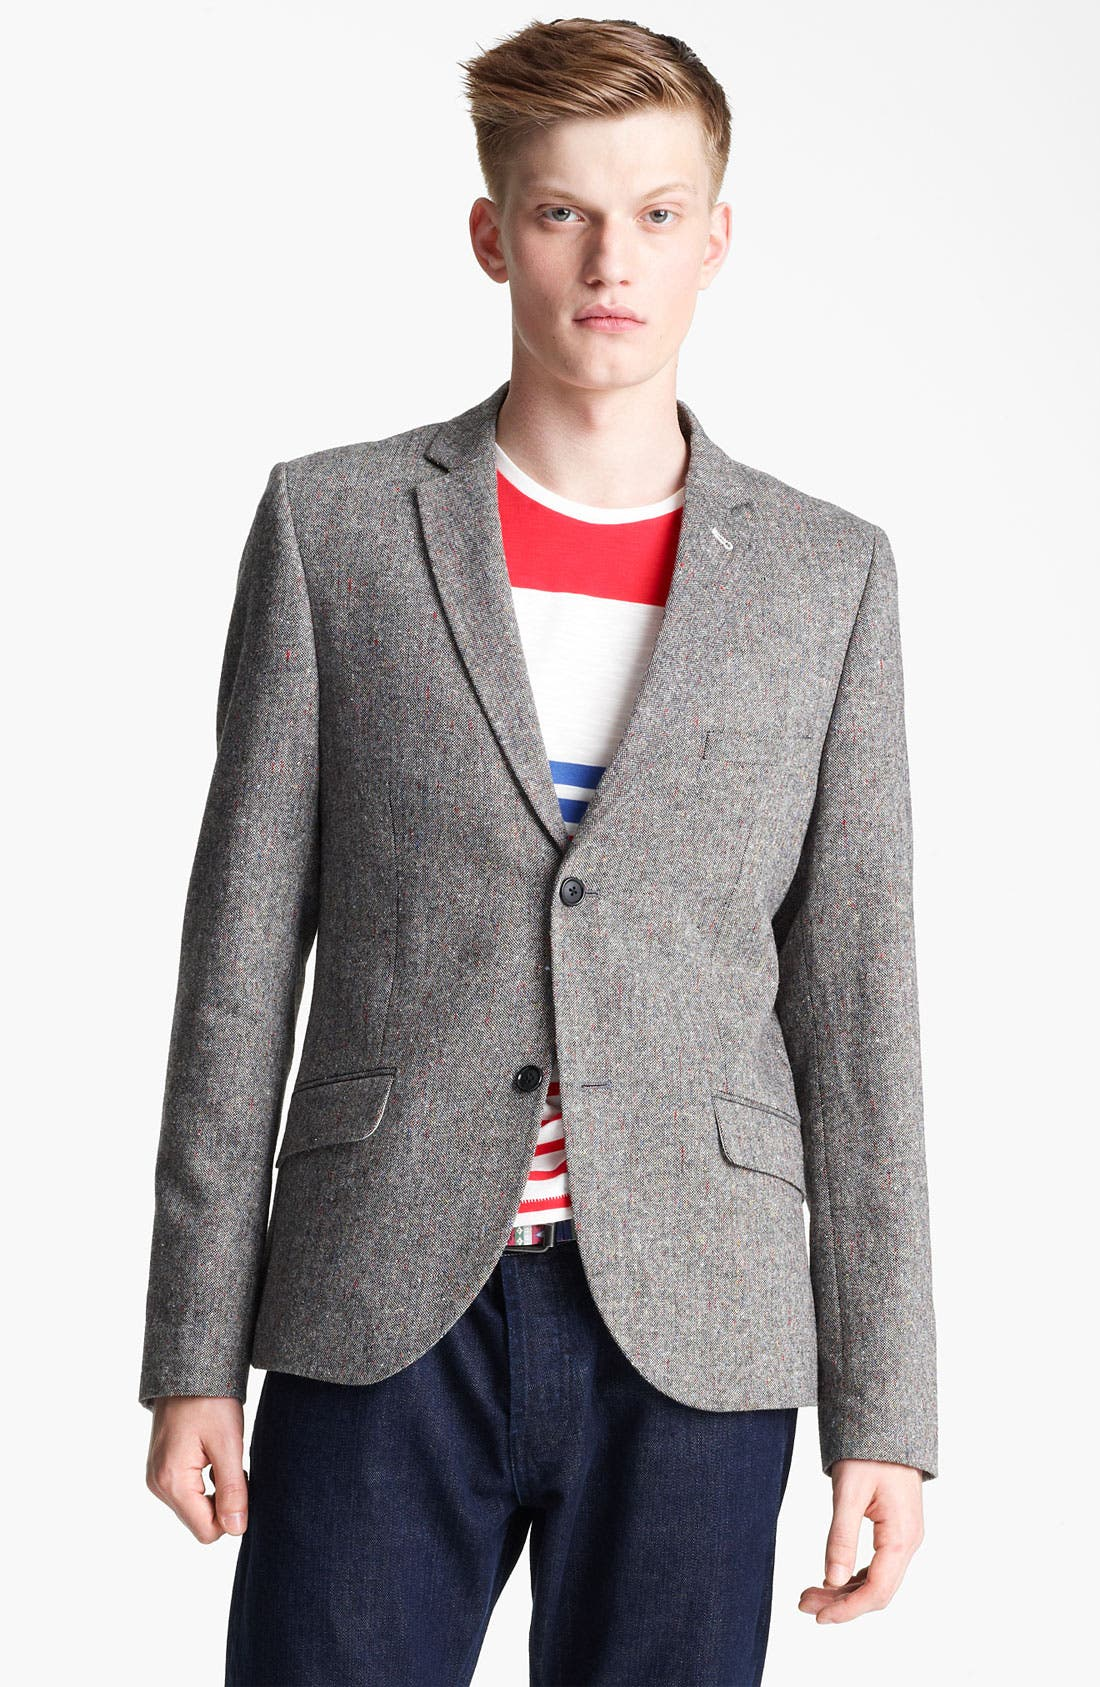 Alternate Image 1 Selected - Topman Heritage Fit Multi Fleck Blazer